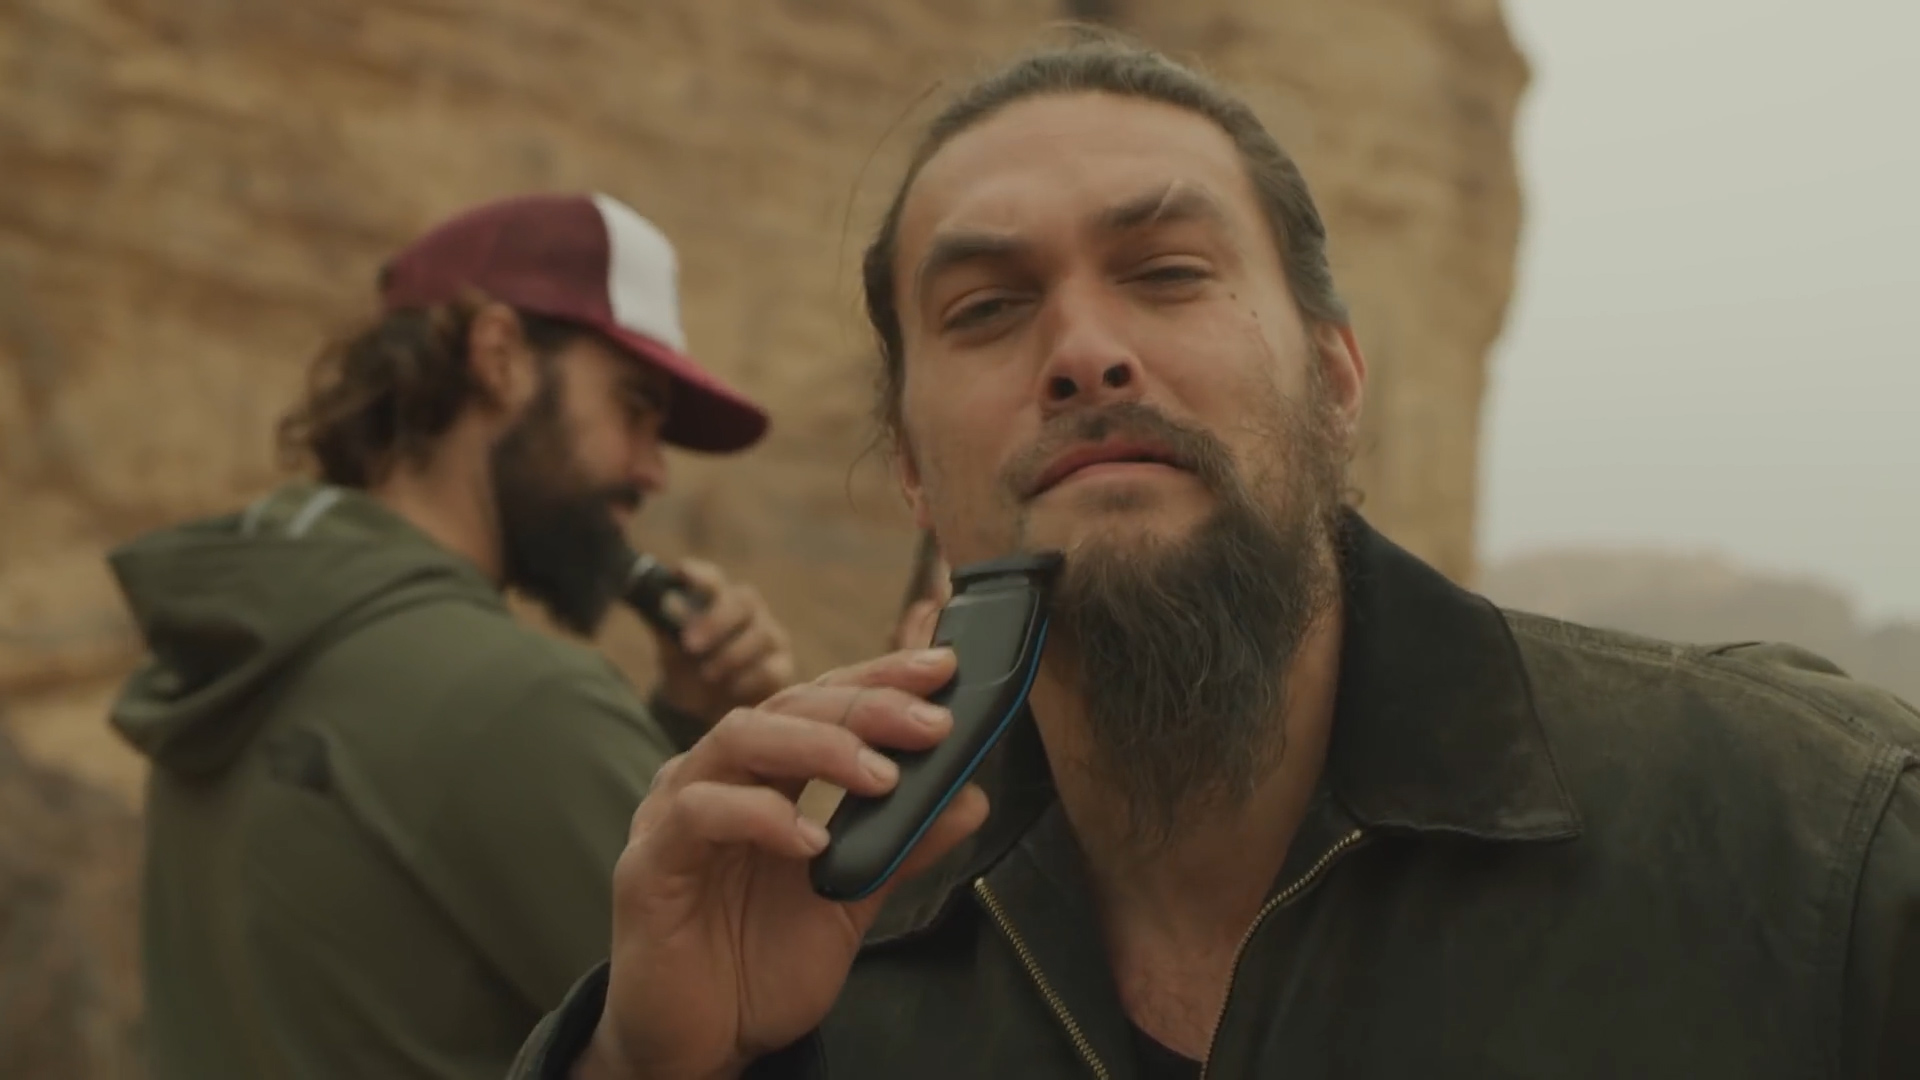 Game Of Thrones Star Jason Momoa Shaves Off Beard For A Cause